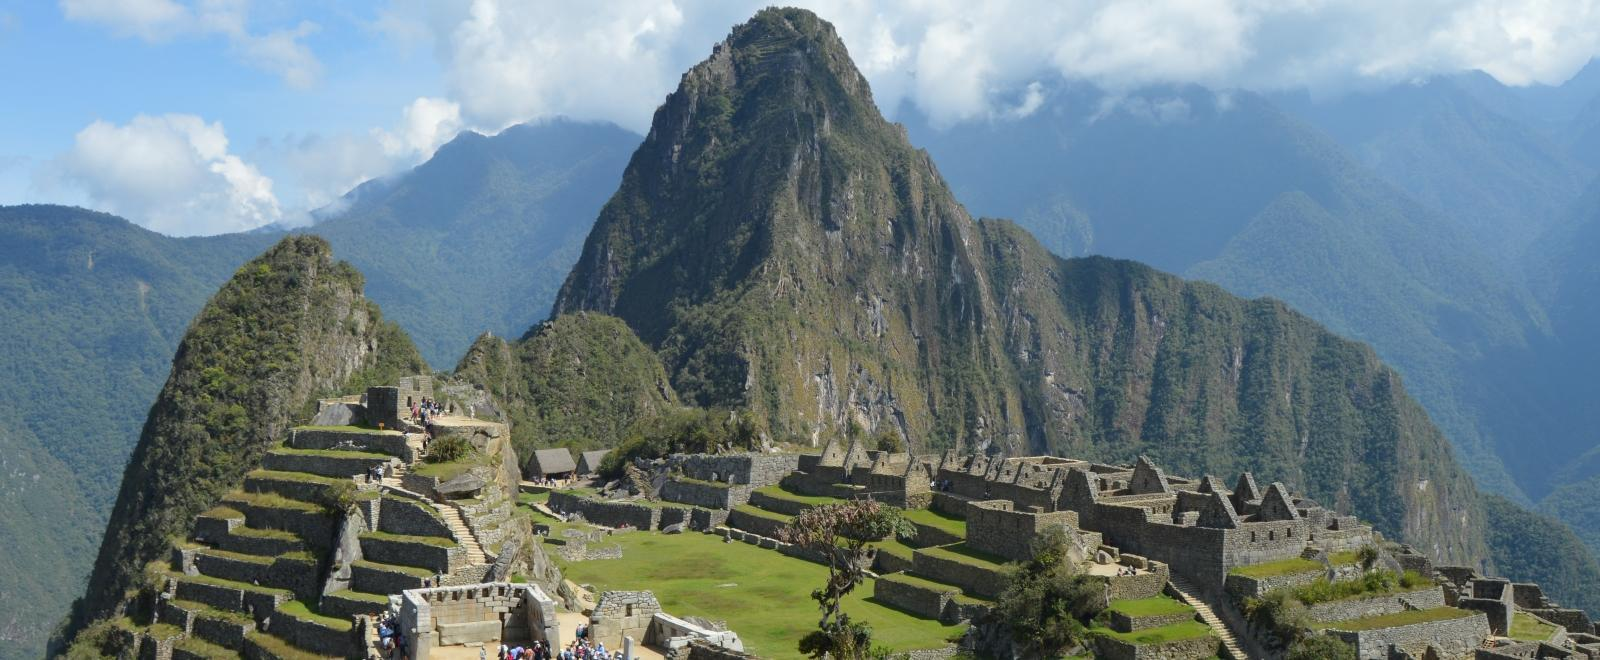 While in Peru, Projects Abroad volunteers love to visit the famous Machu Picchu ruins.